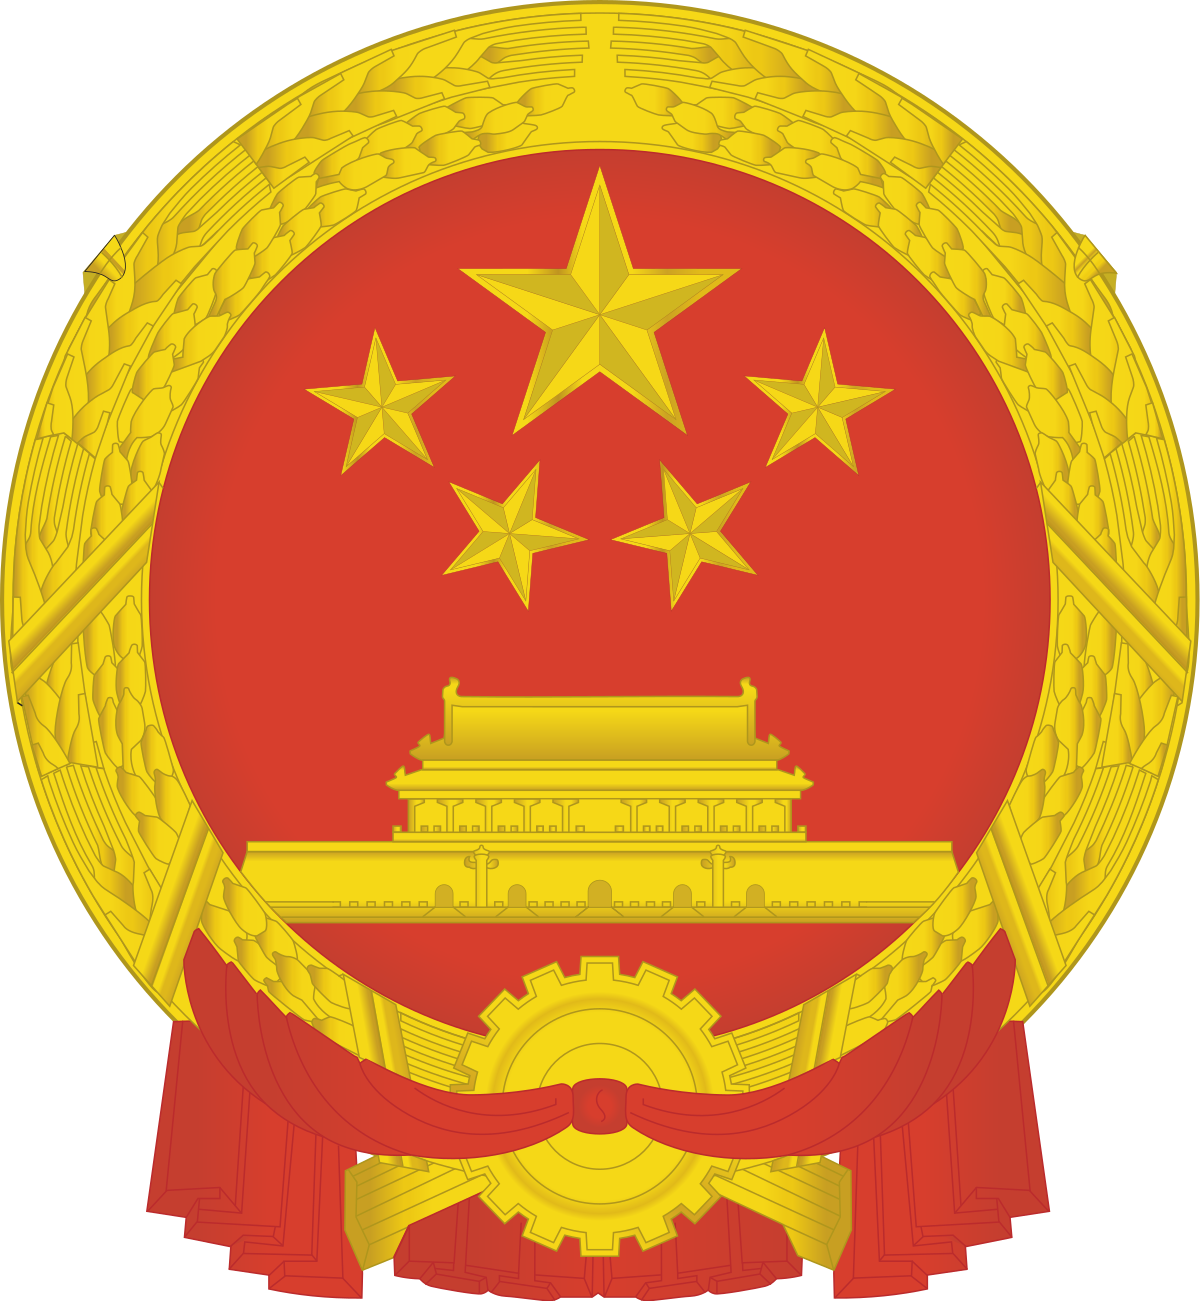 China transparent communist. Government of wikipedia